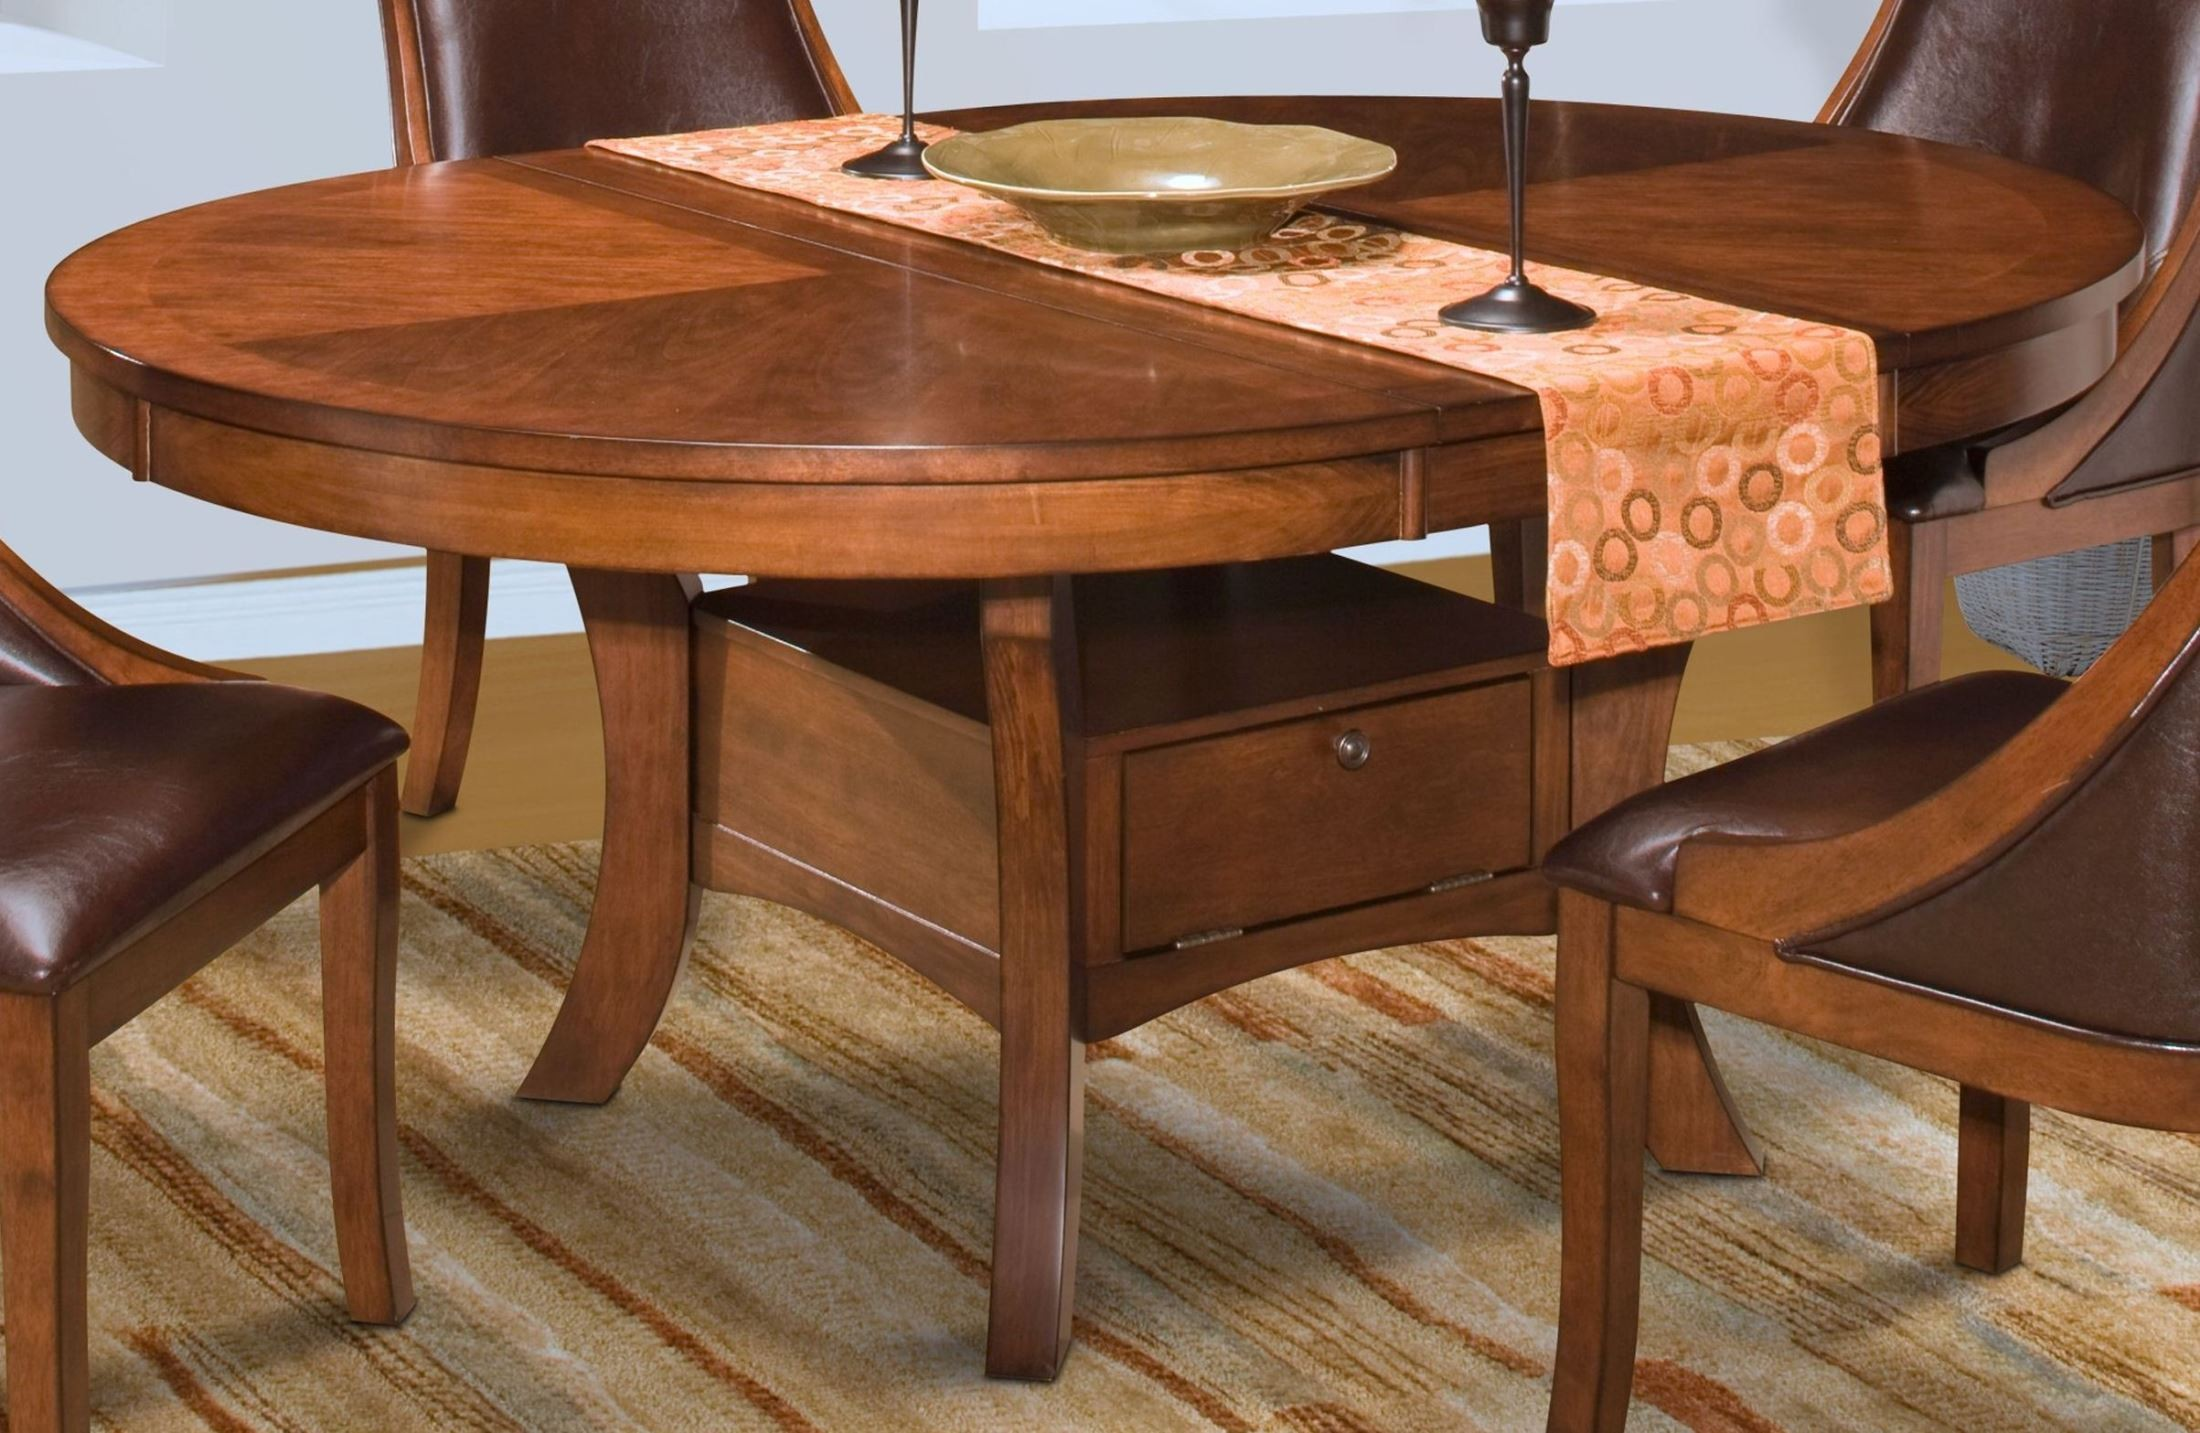 Aspen Round Extendable Dining Table From New Classics 40 116 11 11B